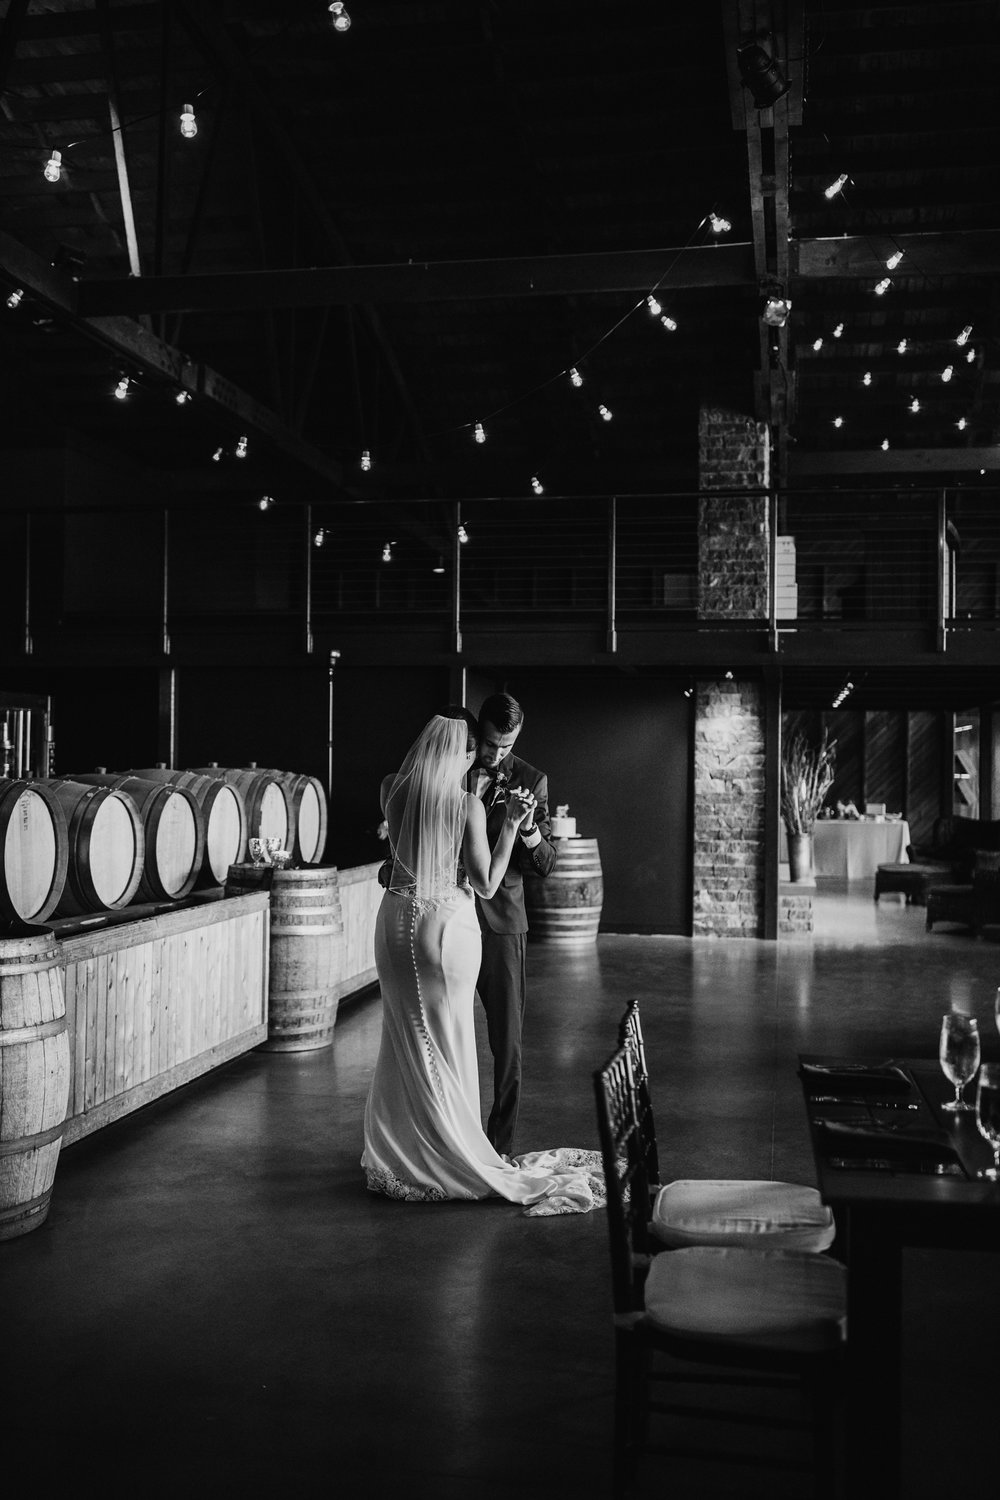 Saltwater-Farm-Vineyard-Wedding-67.jpg